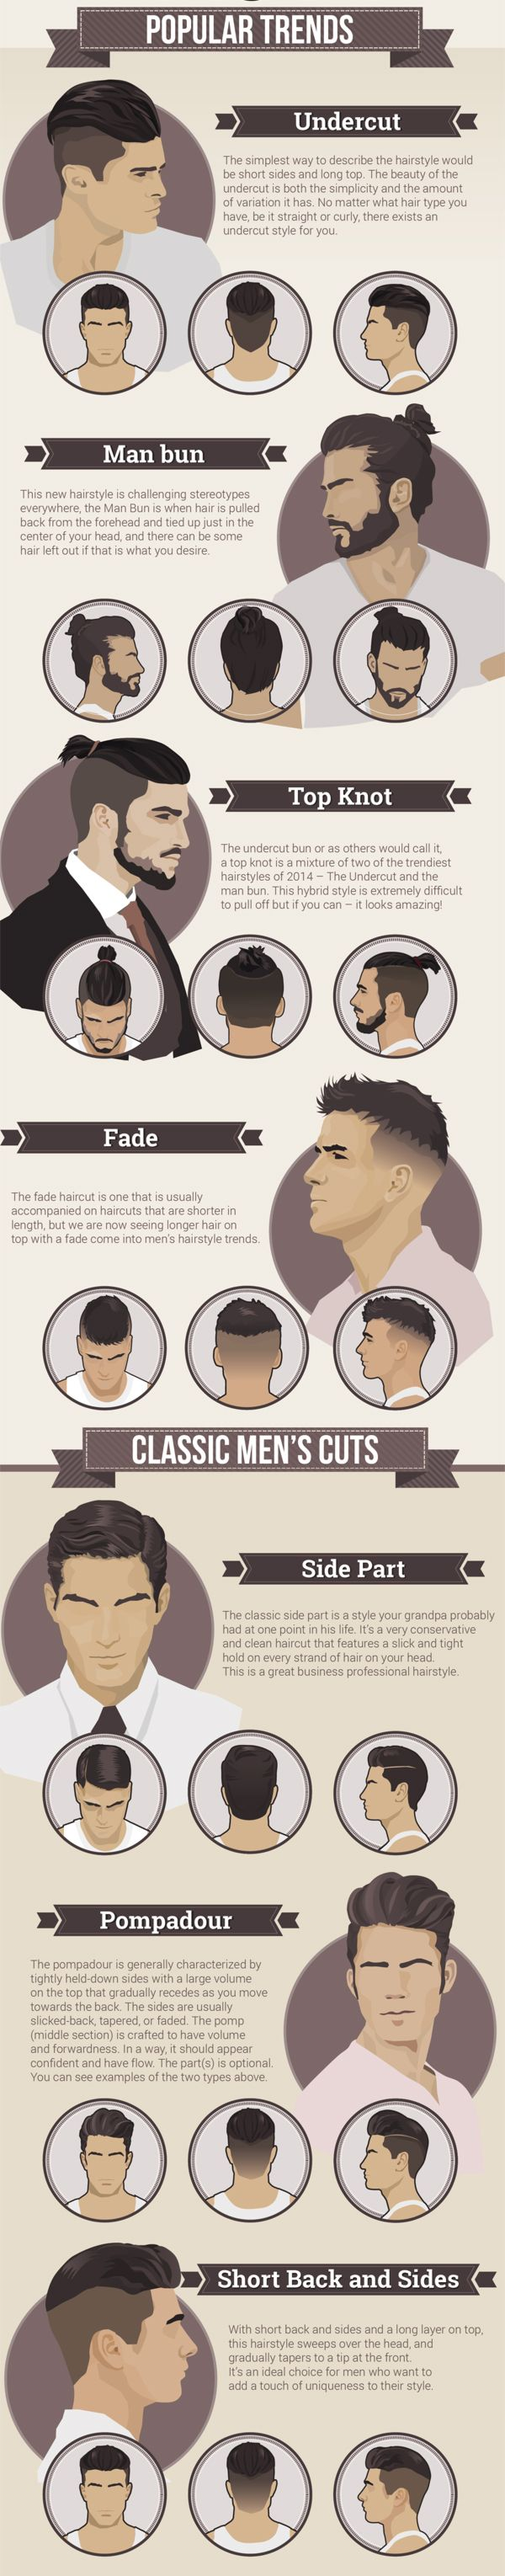 Hair styles for 2015